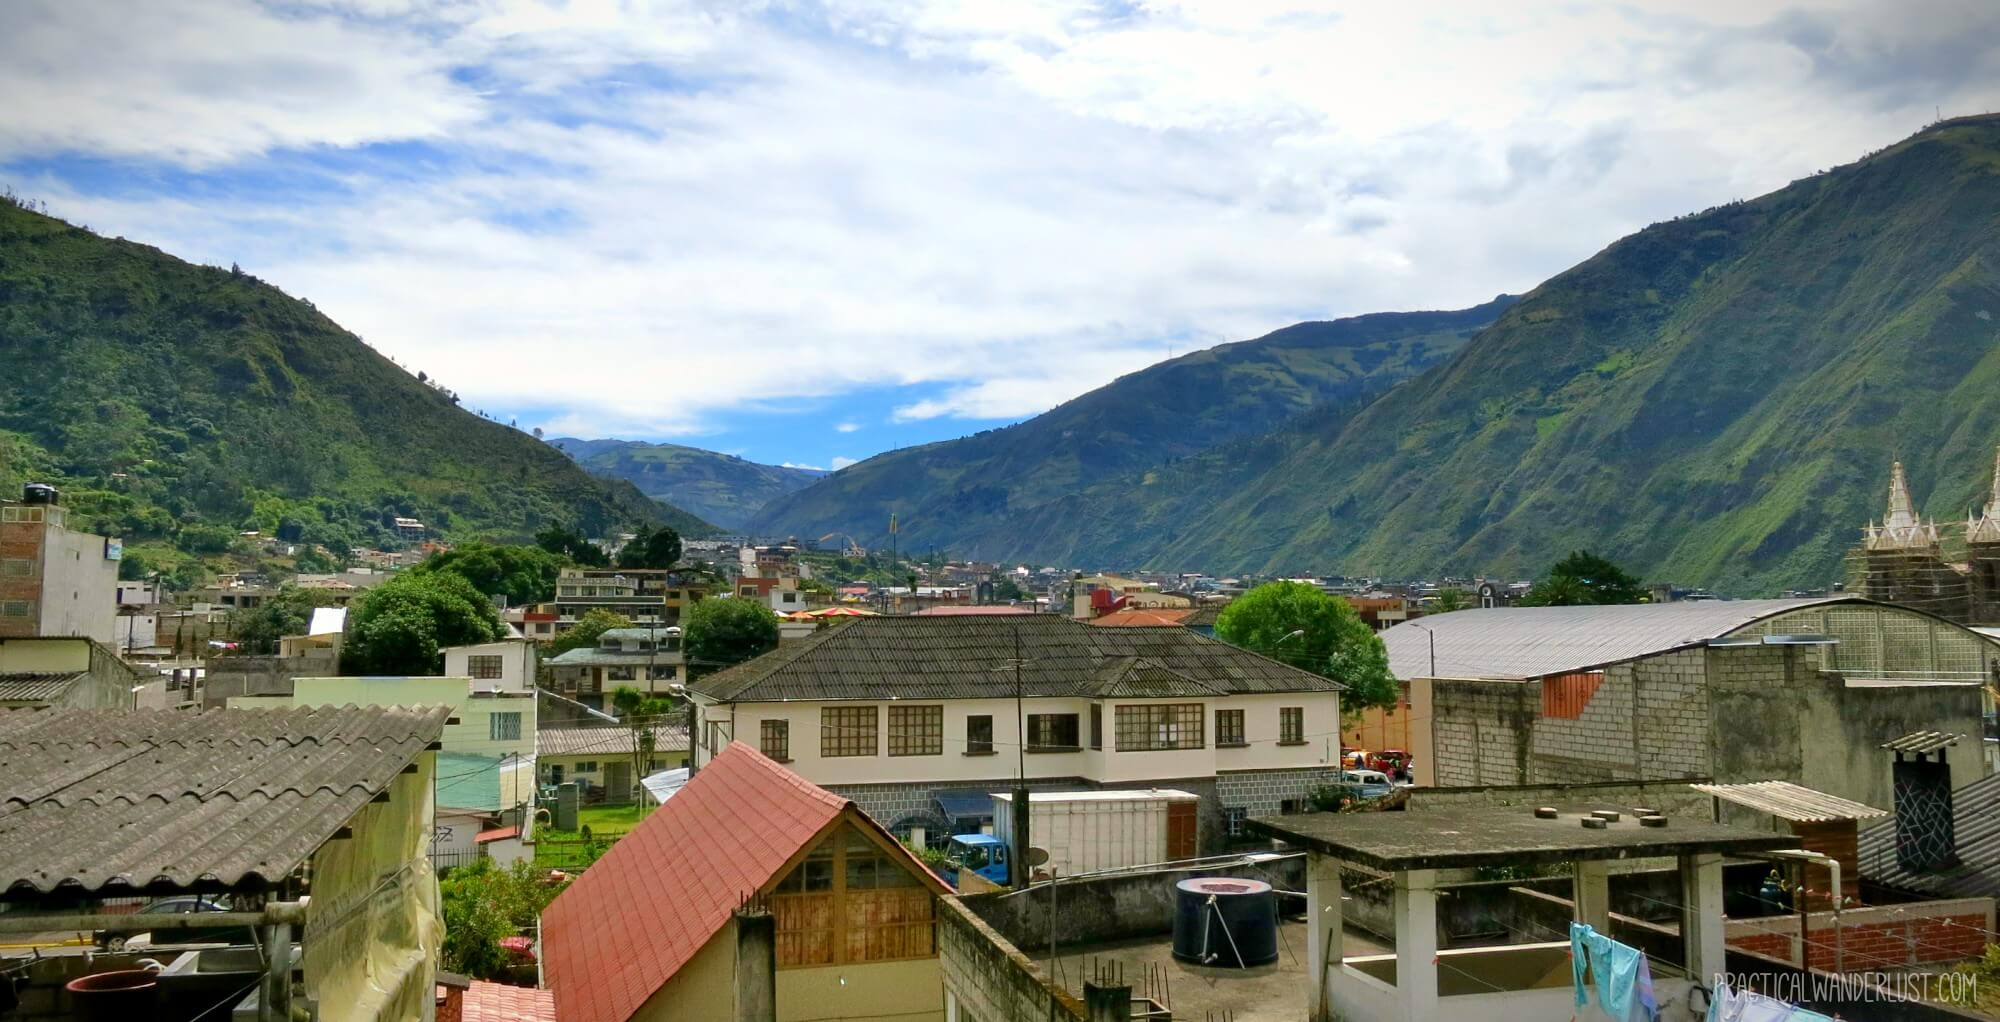 Looking out over the town of Baños, Ecuador from the rooftop cafe at Hostel Chiminea.